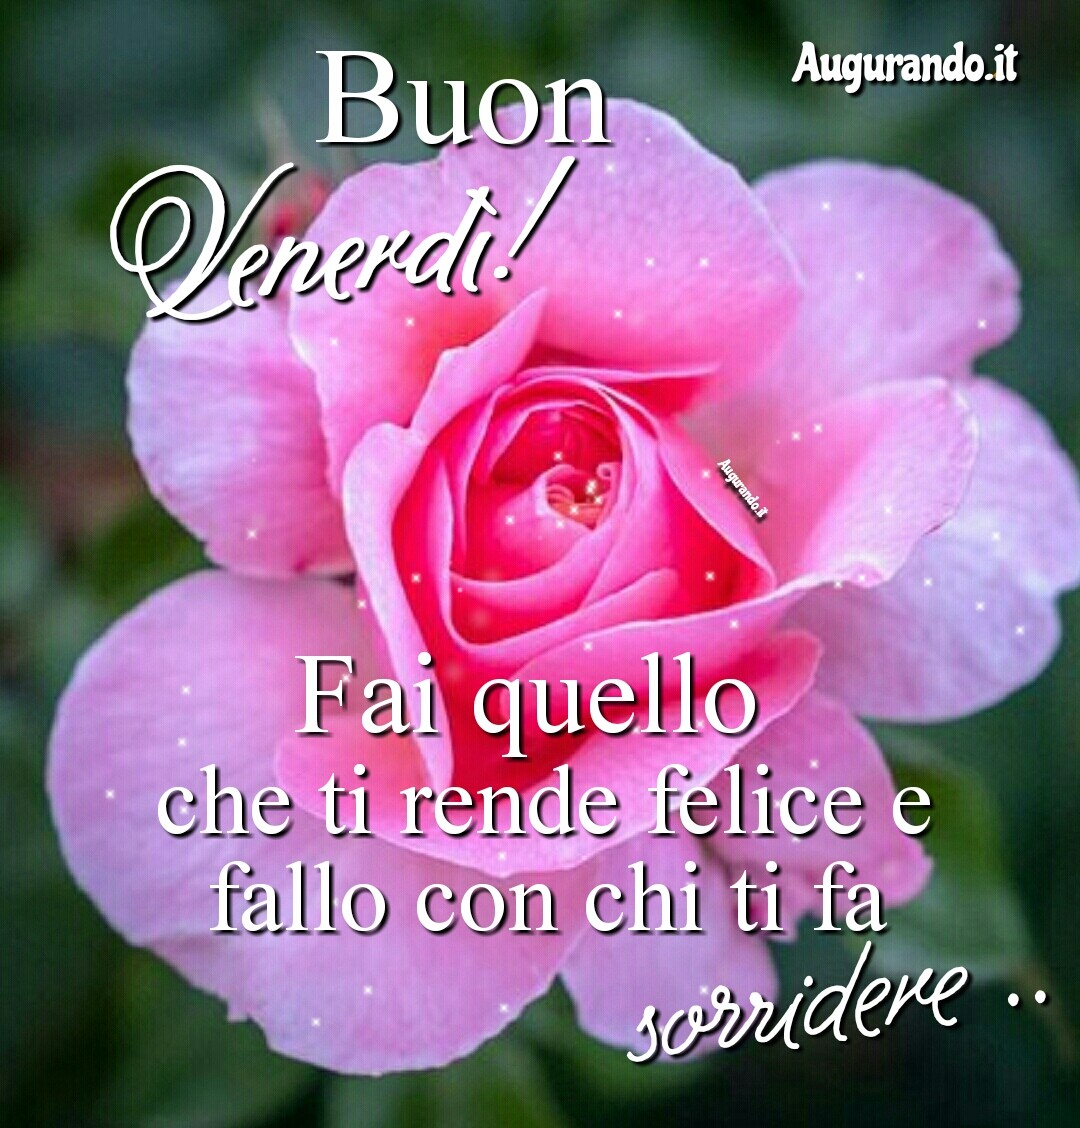 Buon weekend